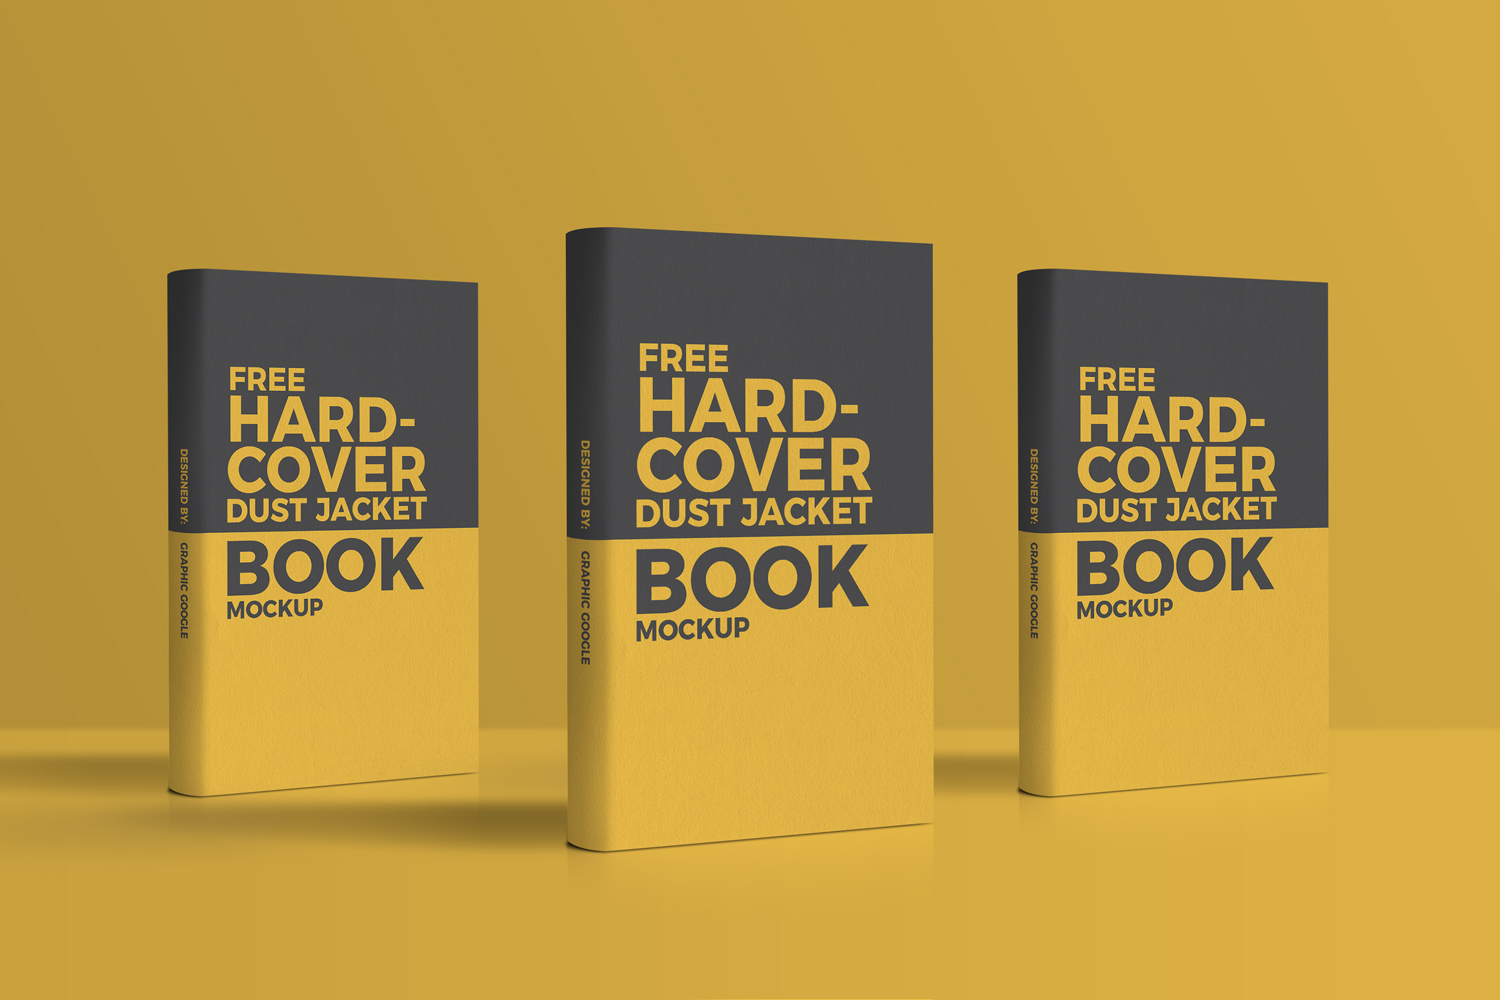 Free-Hardcover-Dust-Jacket-Book-Mockup-Preview-3